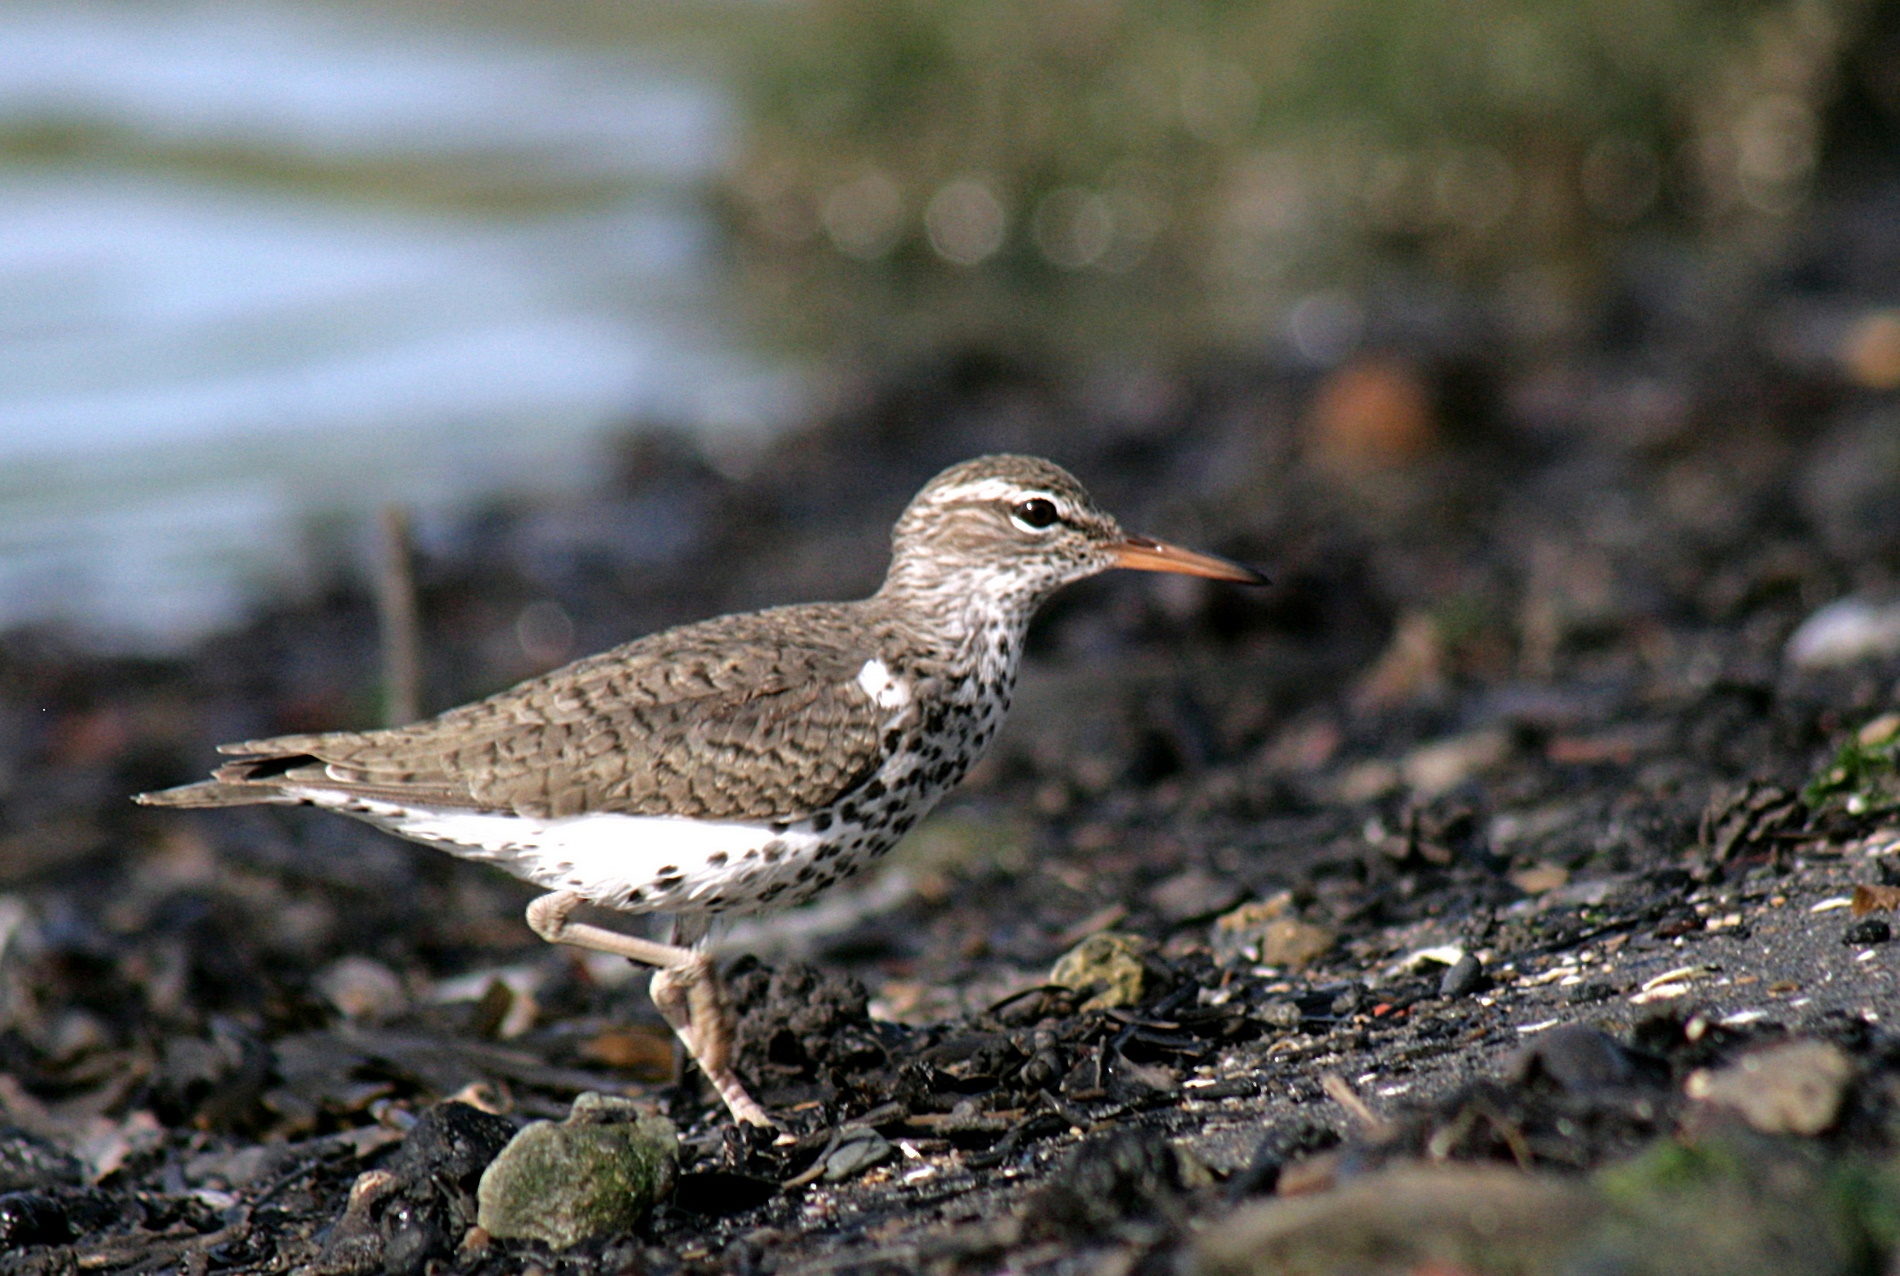 Spotted sandpipers are another shorebird species found in the study region.